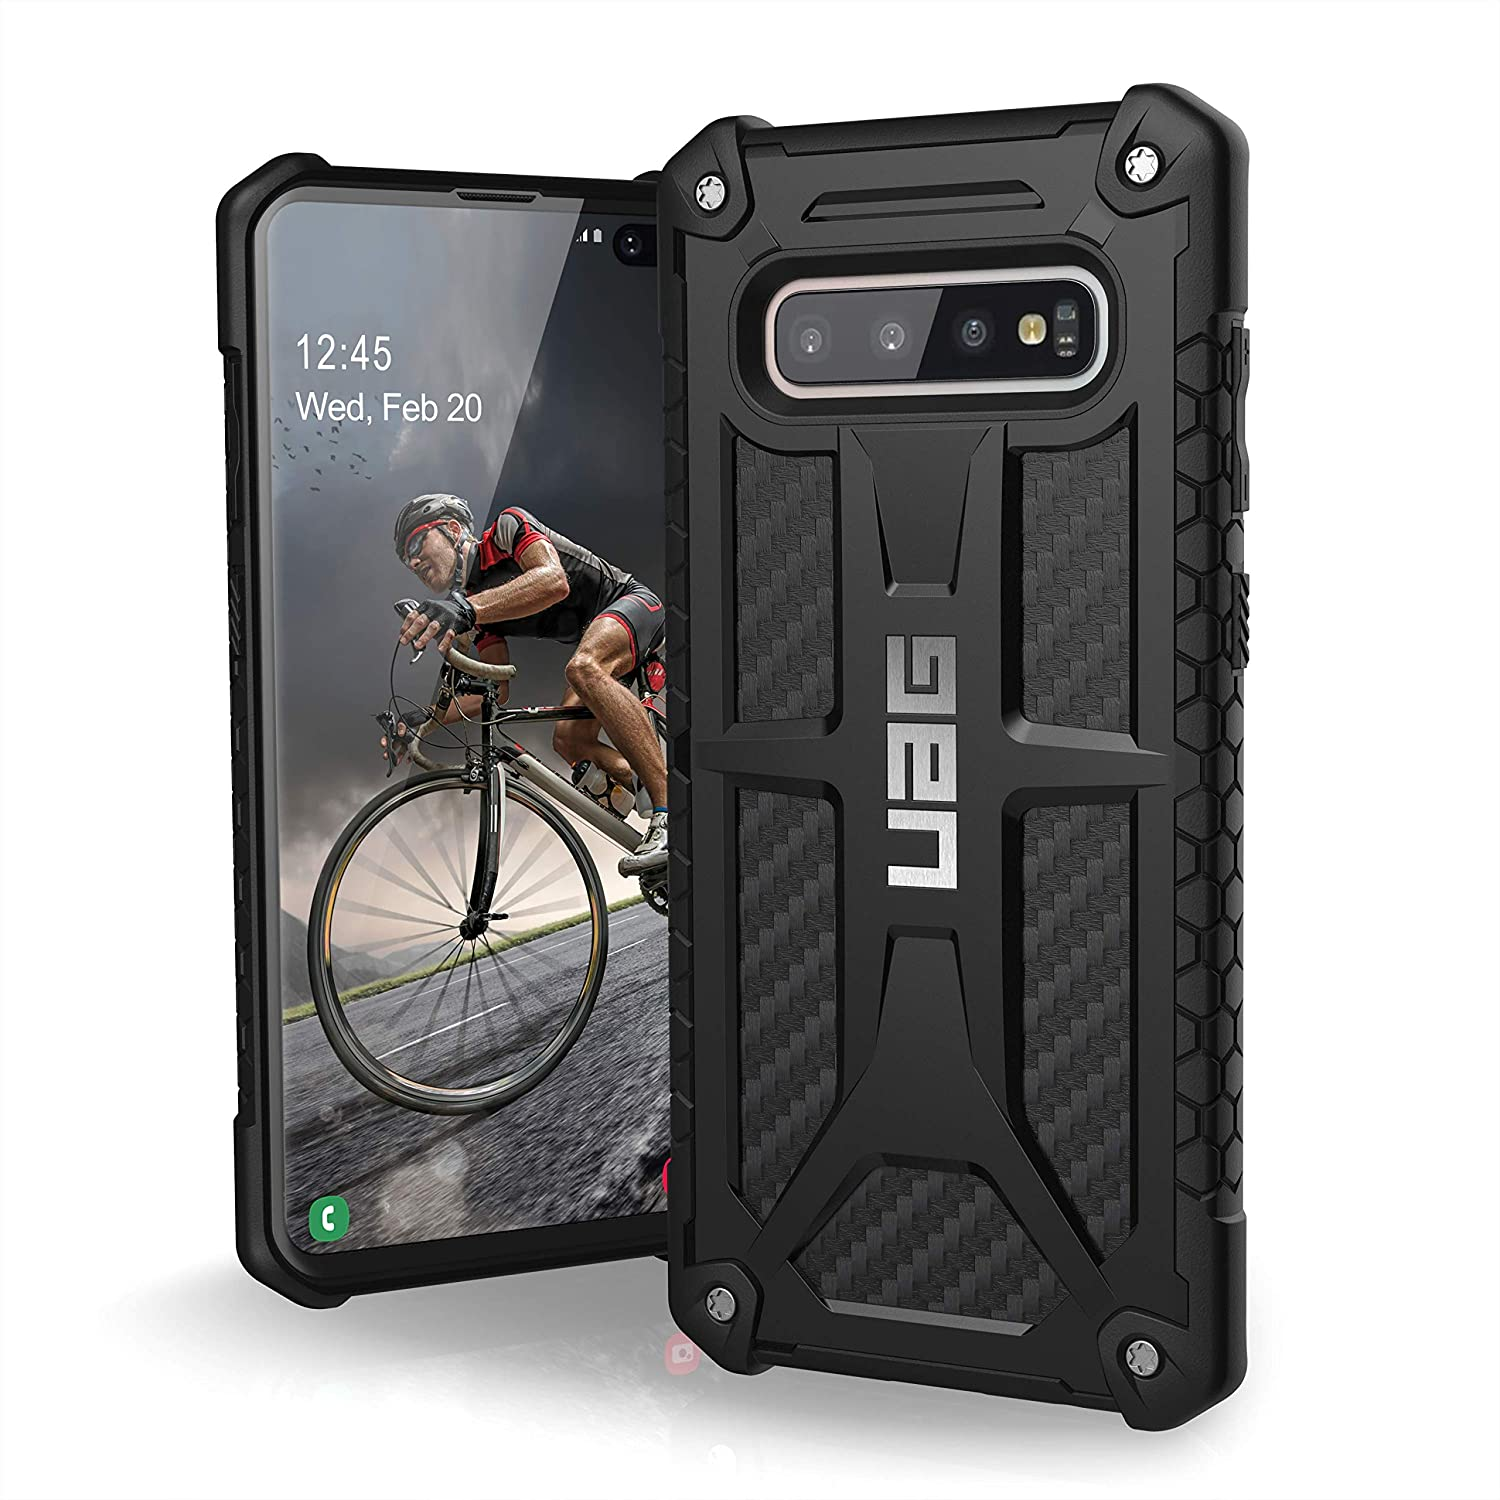 URBAN ARMOR GEAR UAG Designed for Samsung Galaxy S10 Plus [6.4-inch Screen] Monarch [Carbon Fiber] Military Drop Tested Phone Case